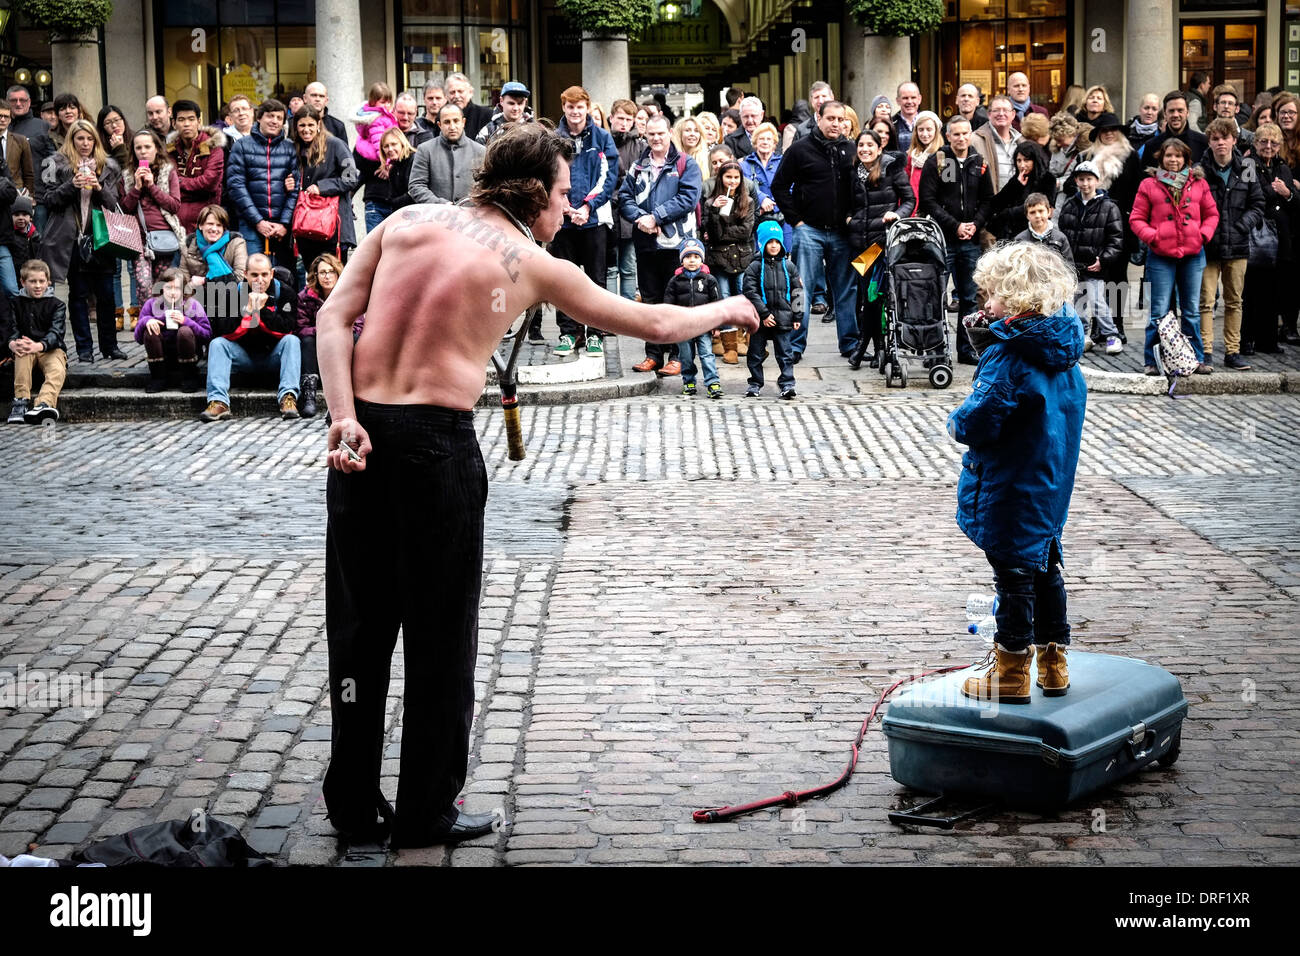 A street entertainer at Covent Garden Piazza. - Stock Image